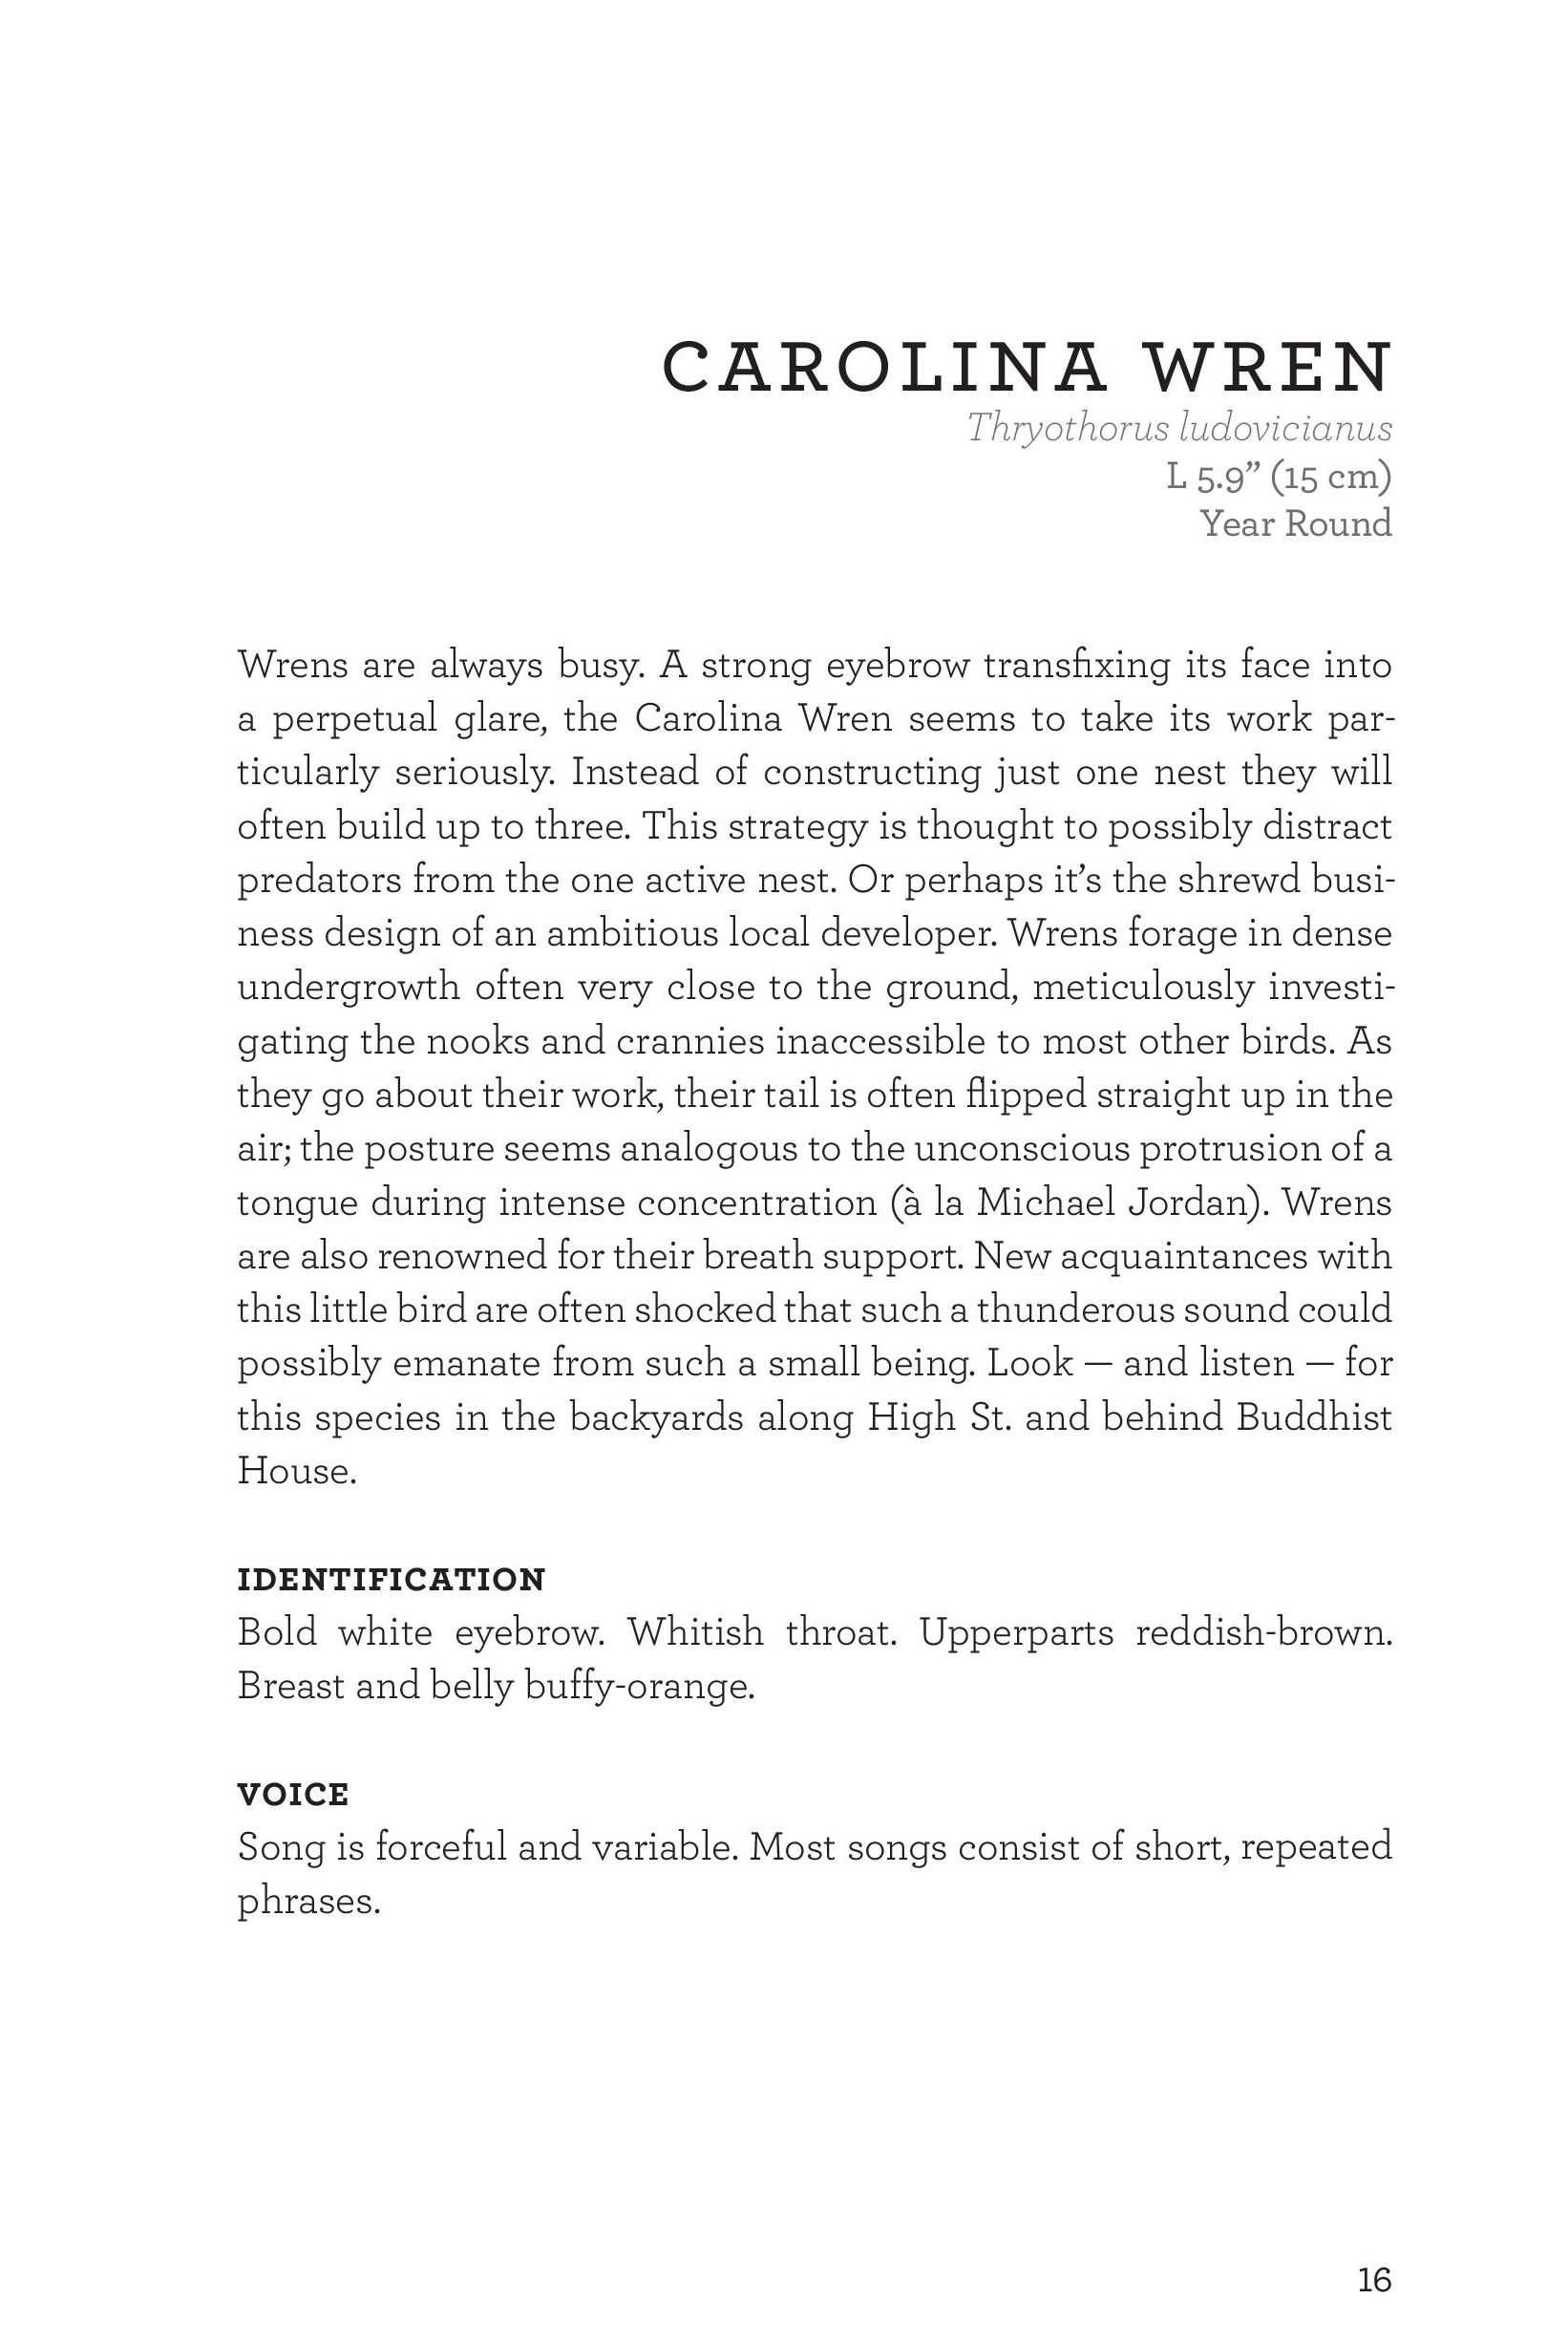 James_FieldGuide_Text screen lores (3)-page-019.jpg